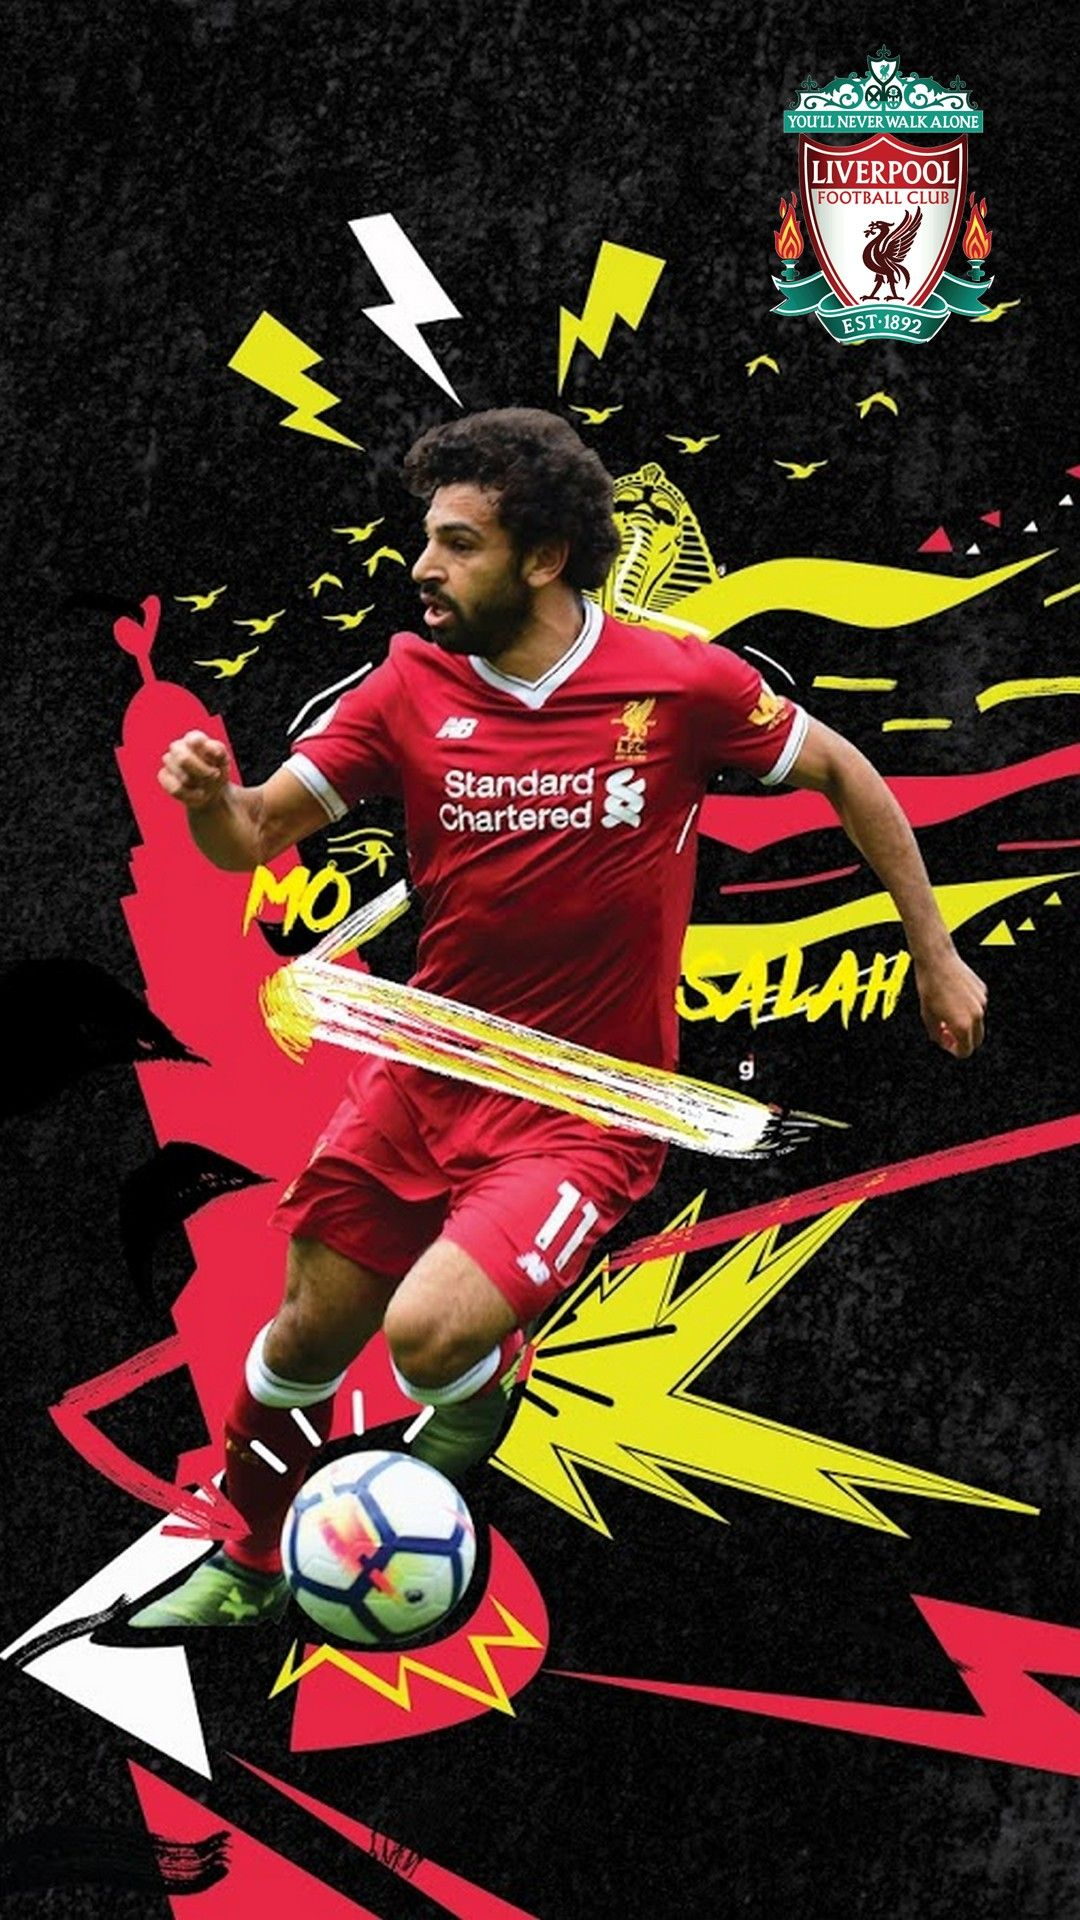 Mohamed Salah Pictures Wallpaper Android Mohamed Salah Liverpool Football Club Football Club